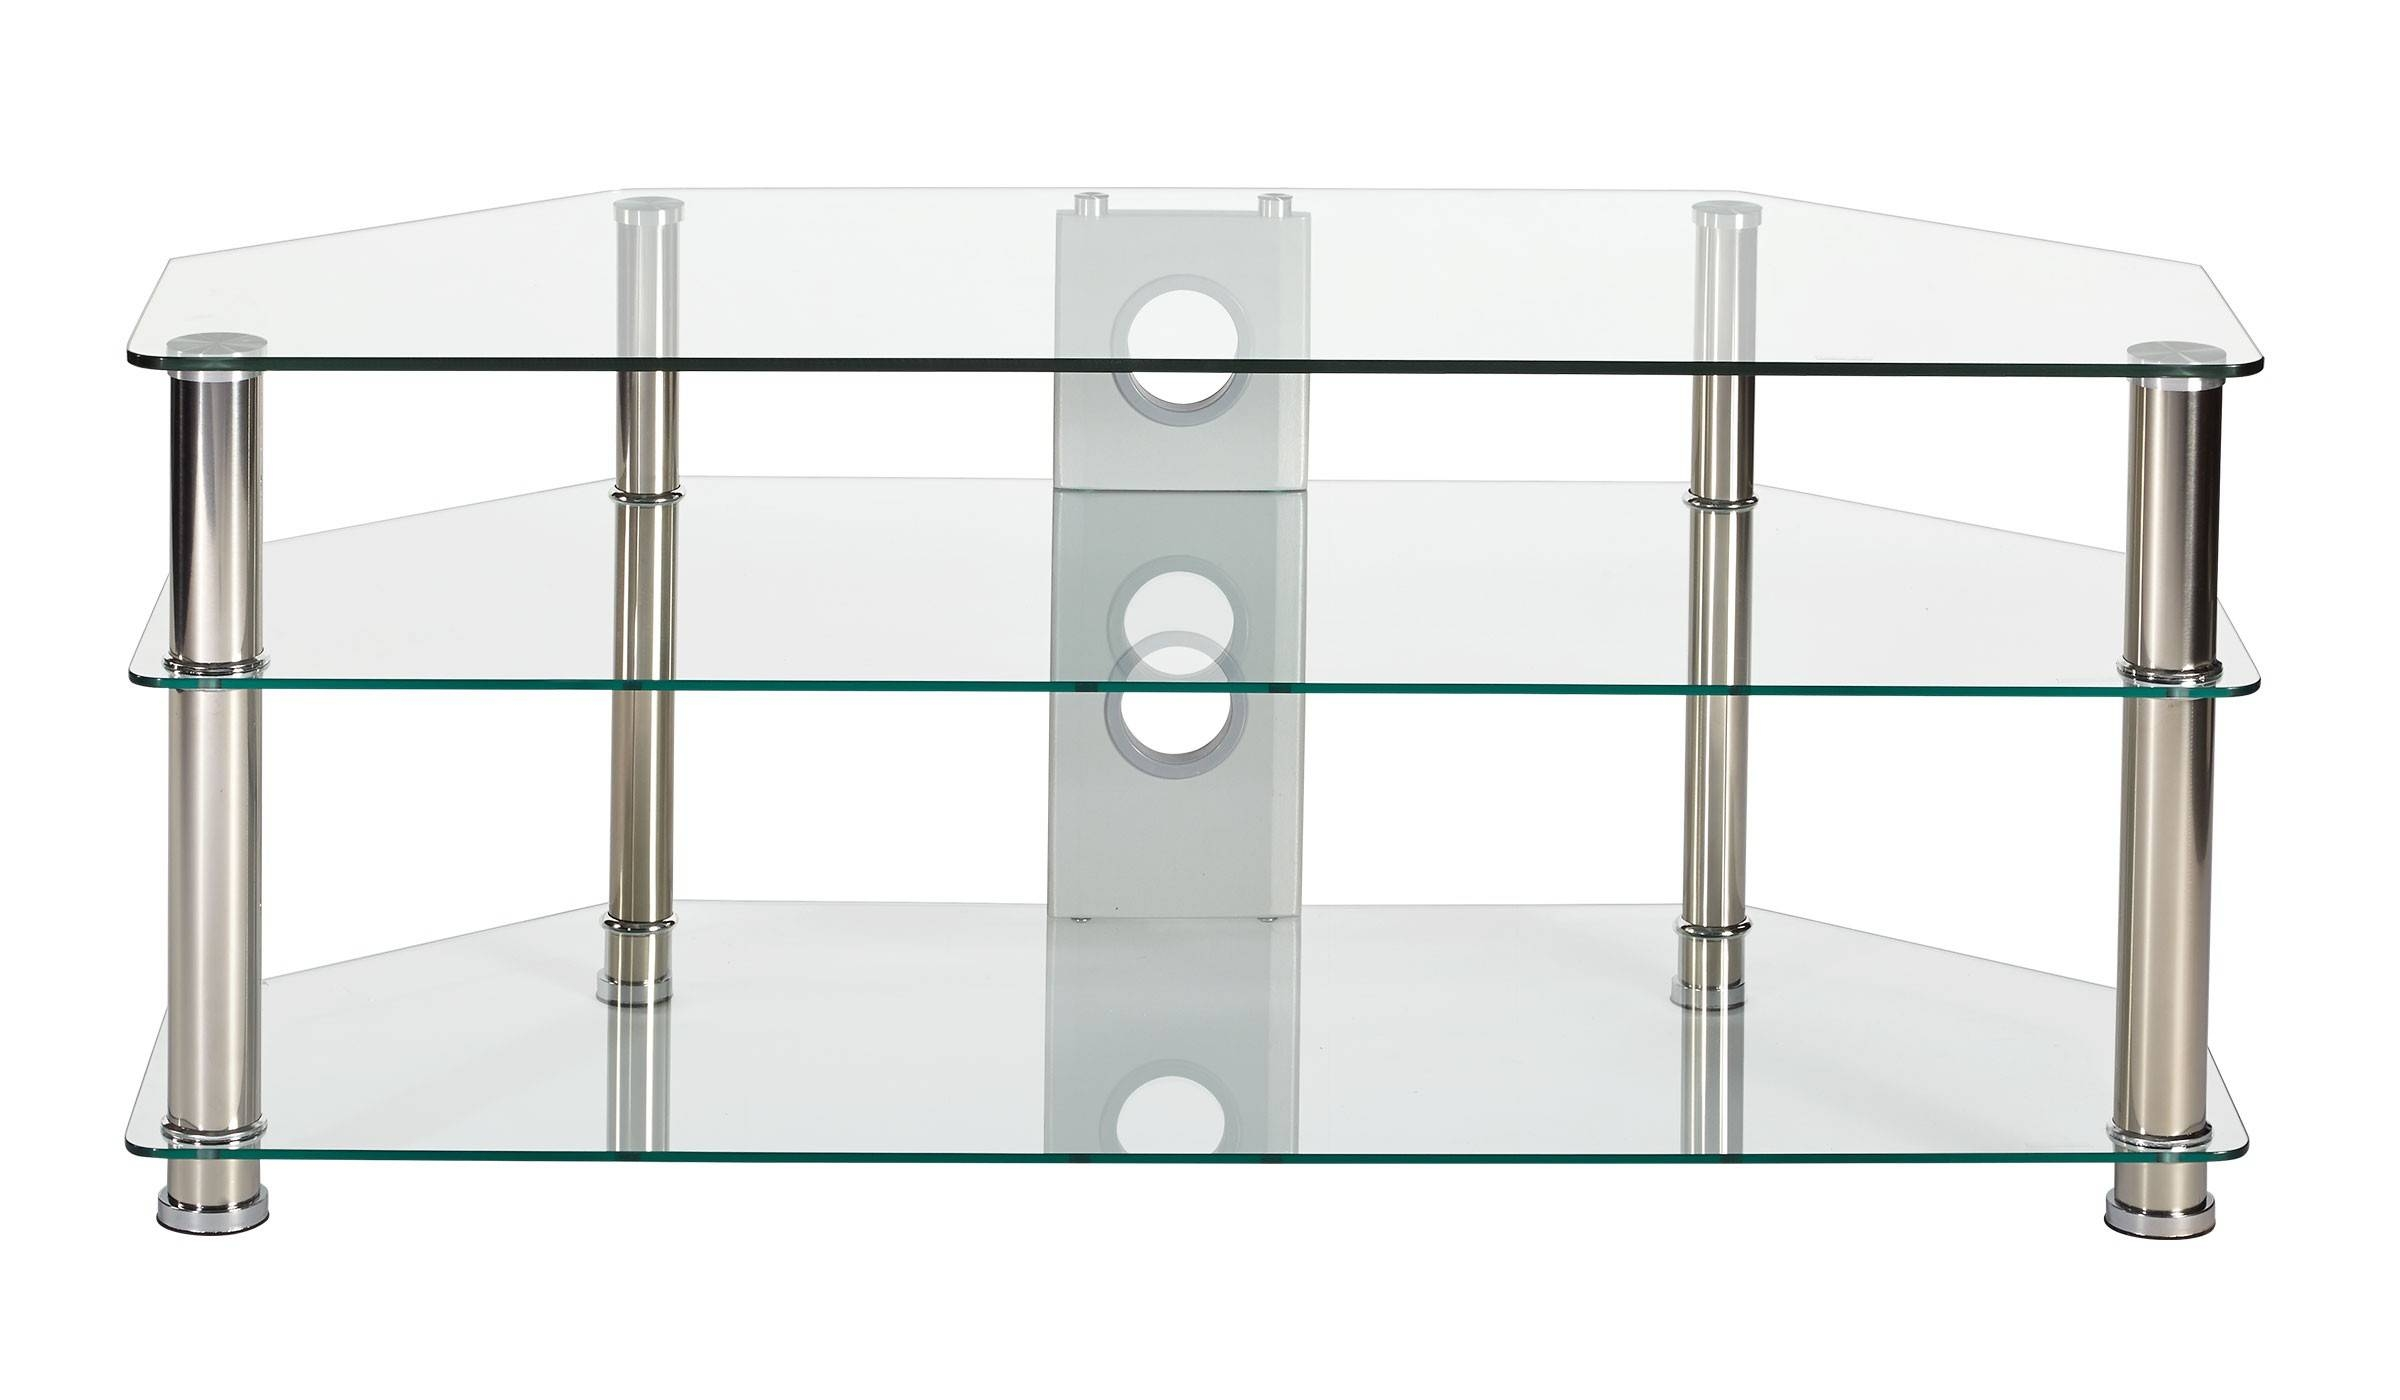 Best Clear Glass Stand For Up To 55-Inch Tv With Chrome Legs inside Clear Glass Tv Stand (Image 4 of 15)